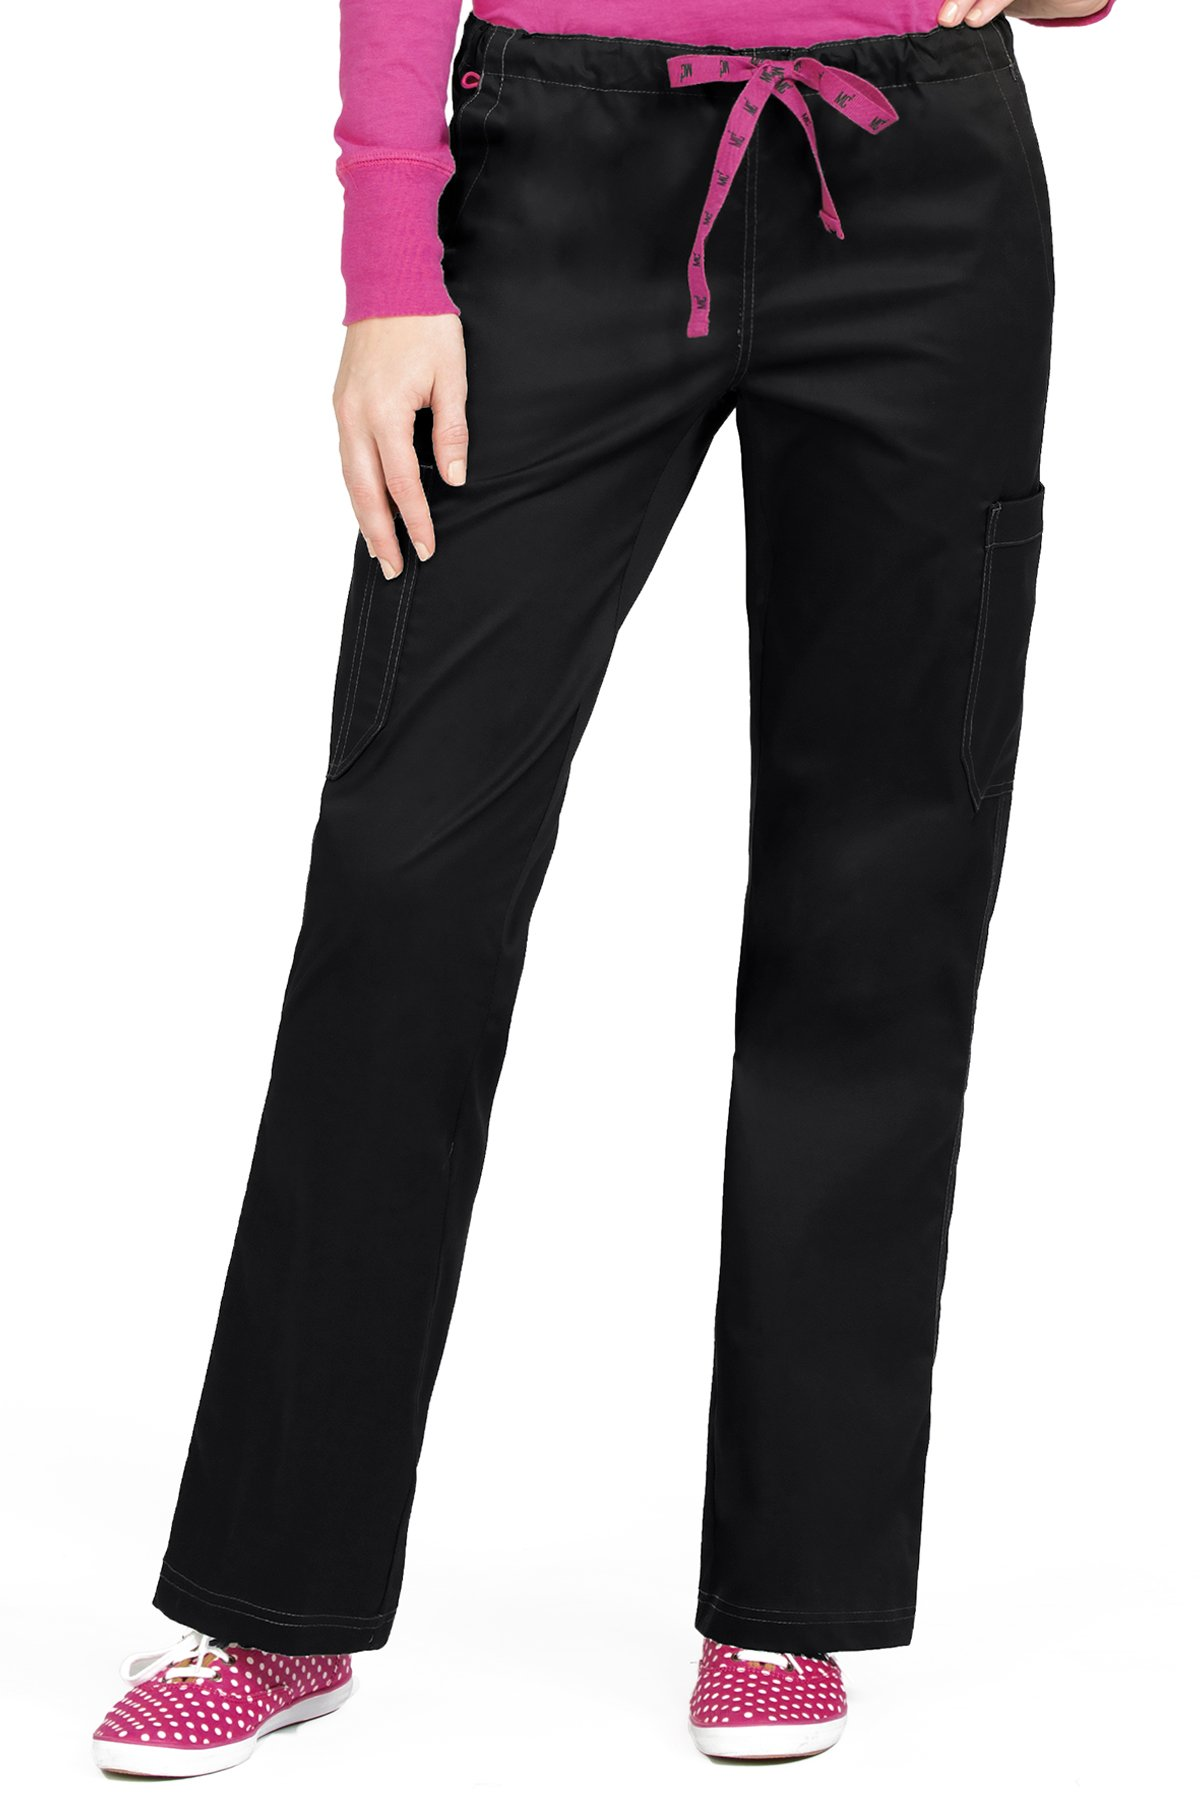 Med Couture Women's MC2 Layla Pant, Black, Large